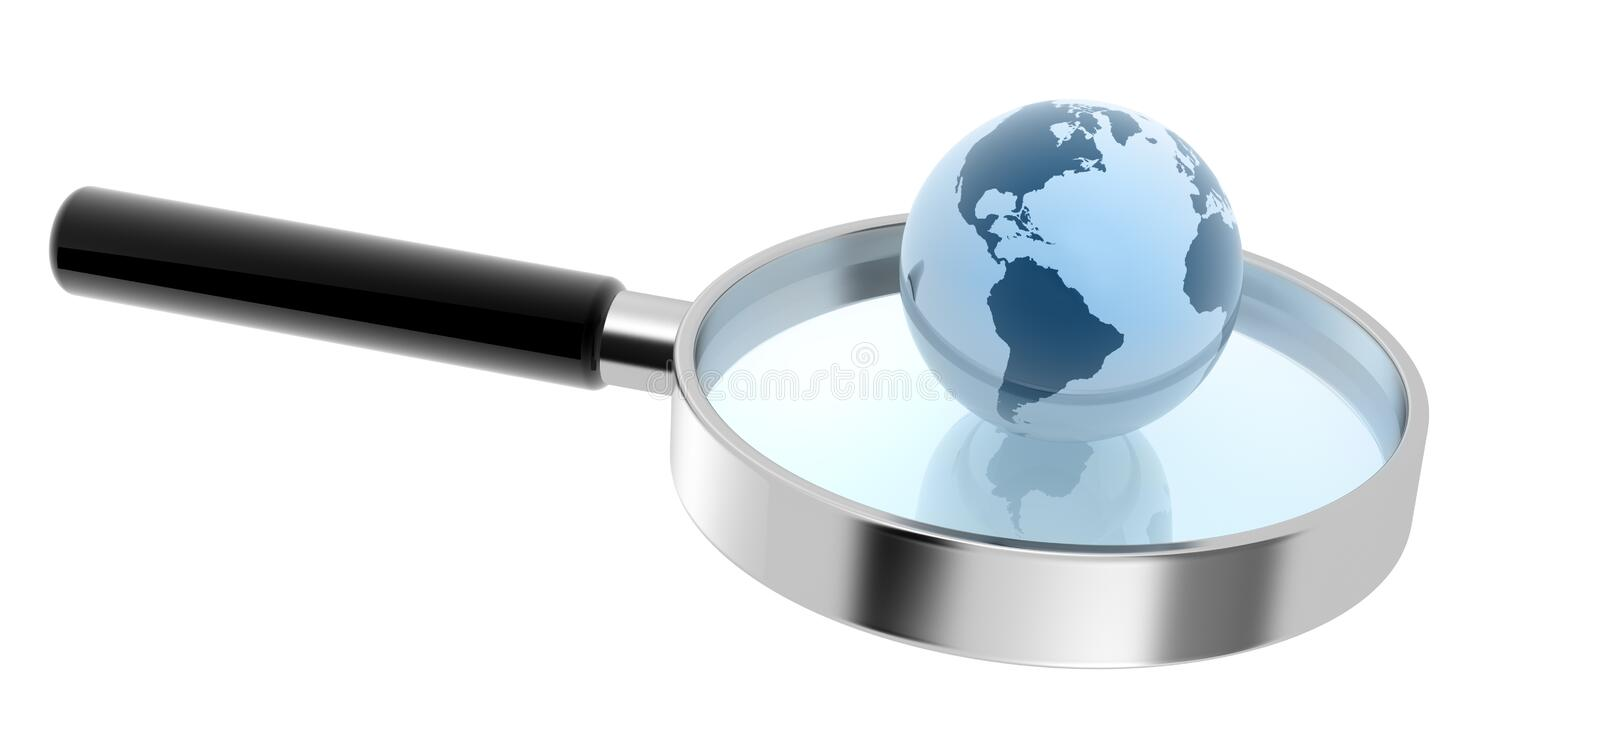 Hand lens and earth sphere stock illustration